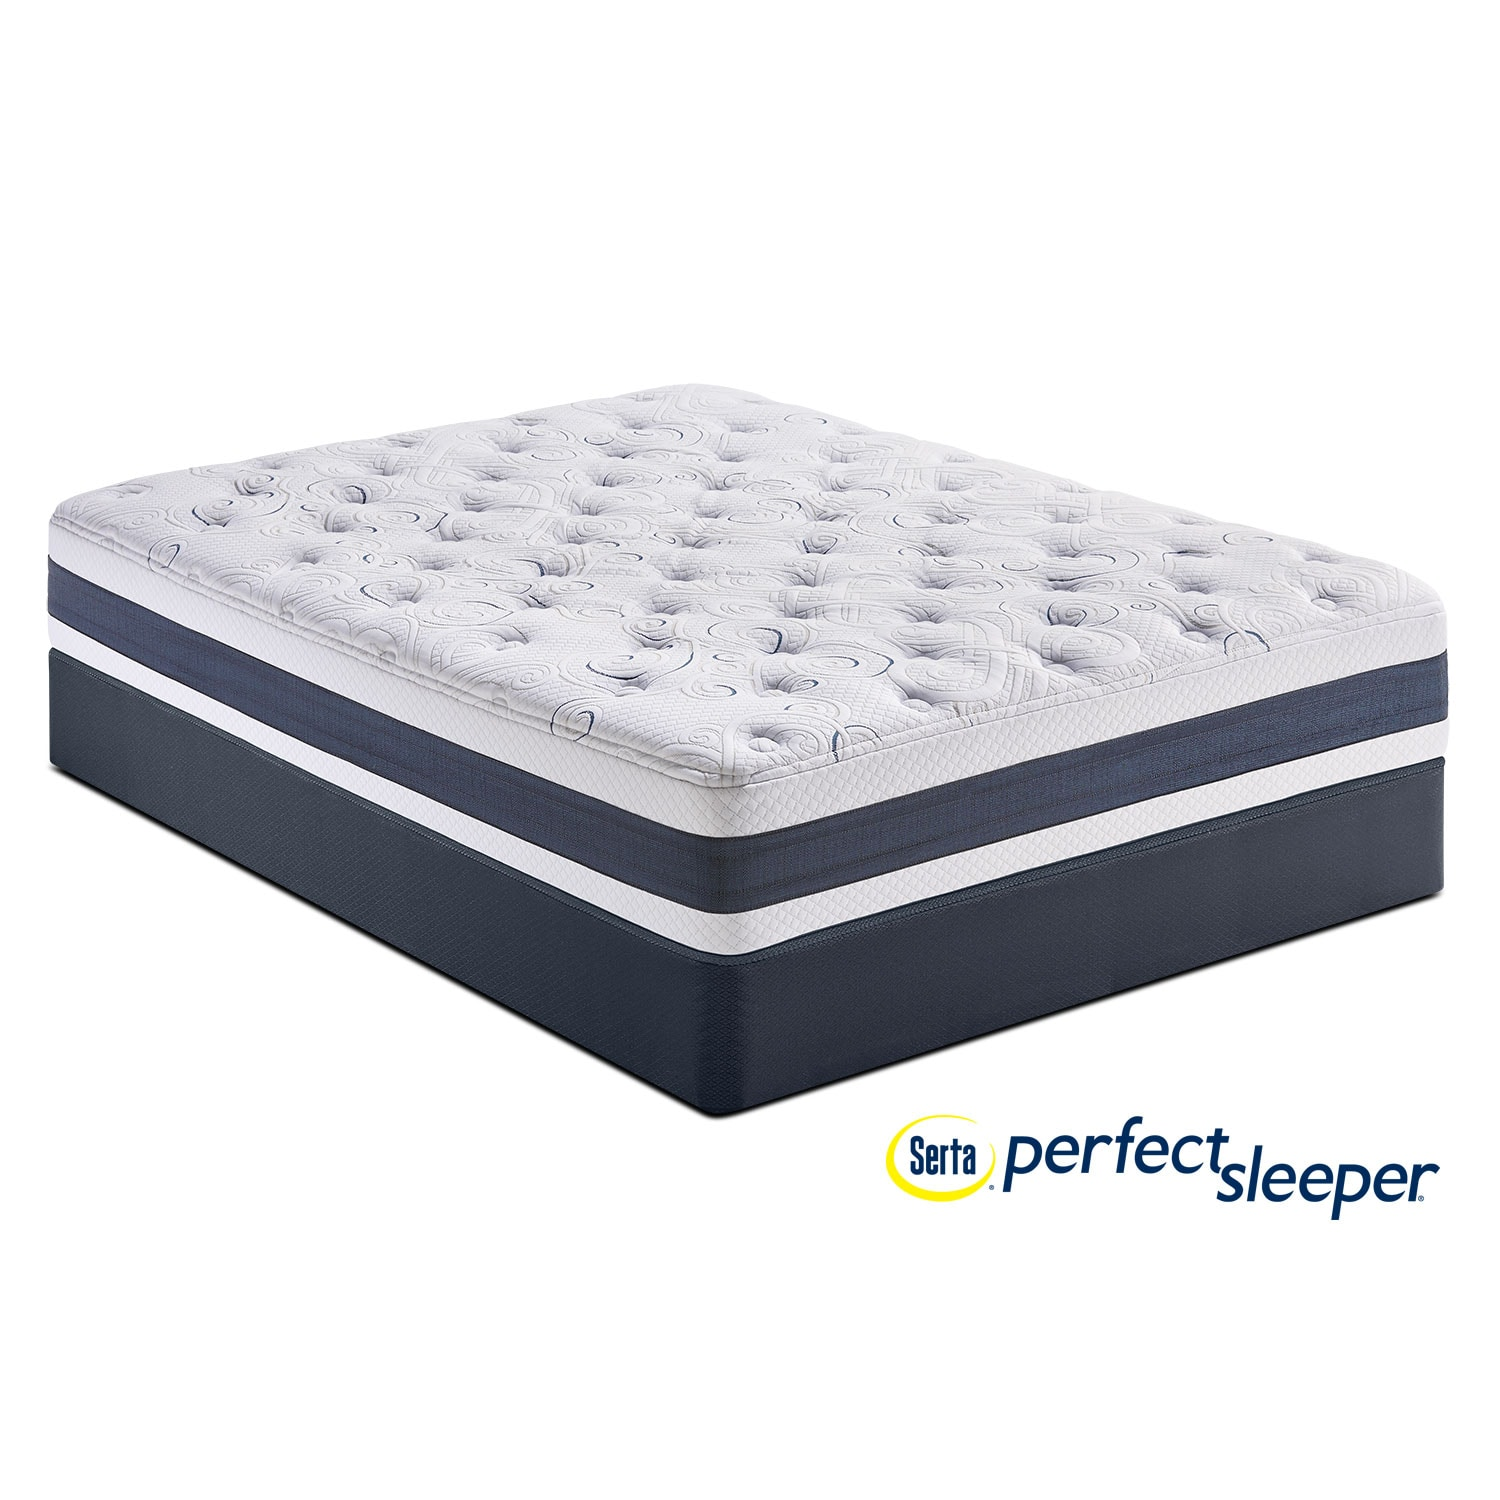 Mattresses and Bedding - Shadow Falls Plush Twin XL Mattress and Foundation Set